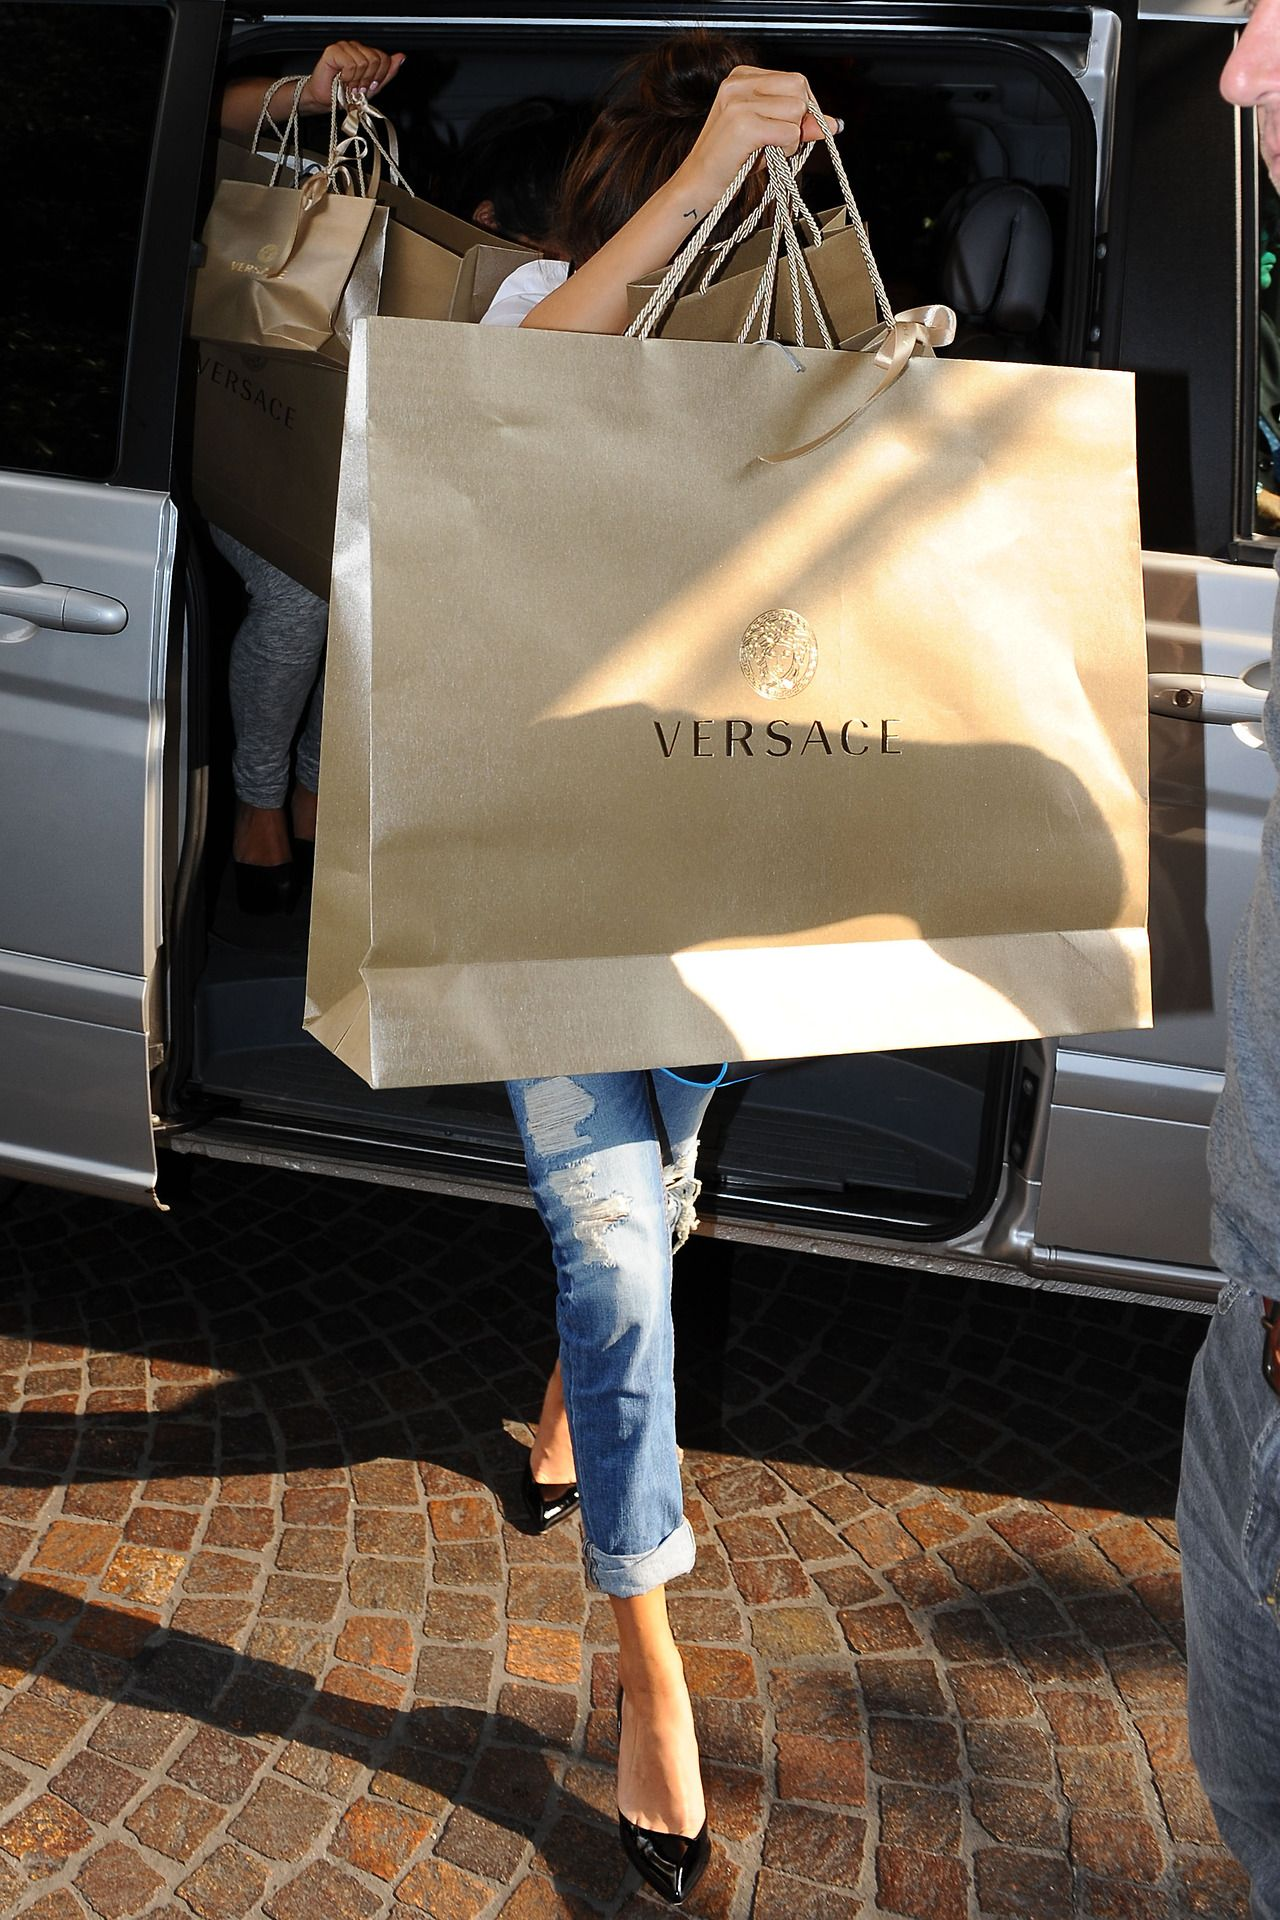 How Glamourous To Go On A Shopping Spree That Needed This Big Of A Versace Bag Fashion Shopping Versace